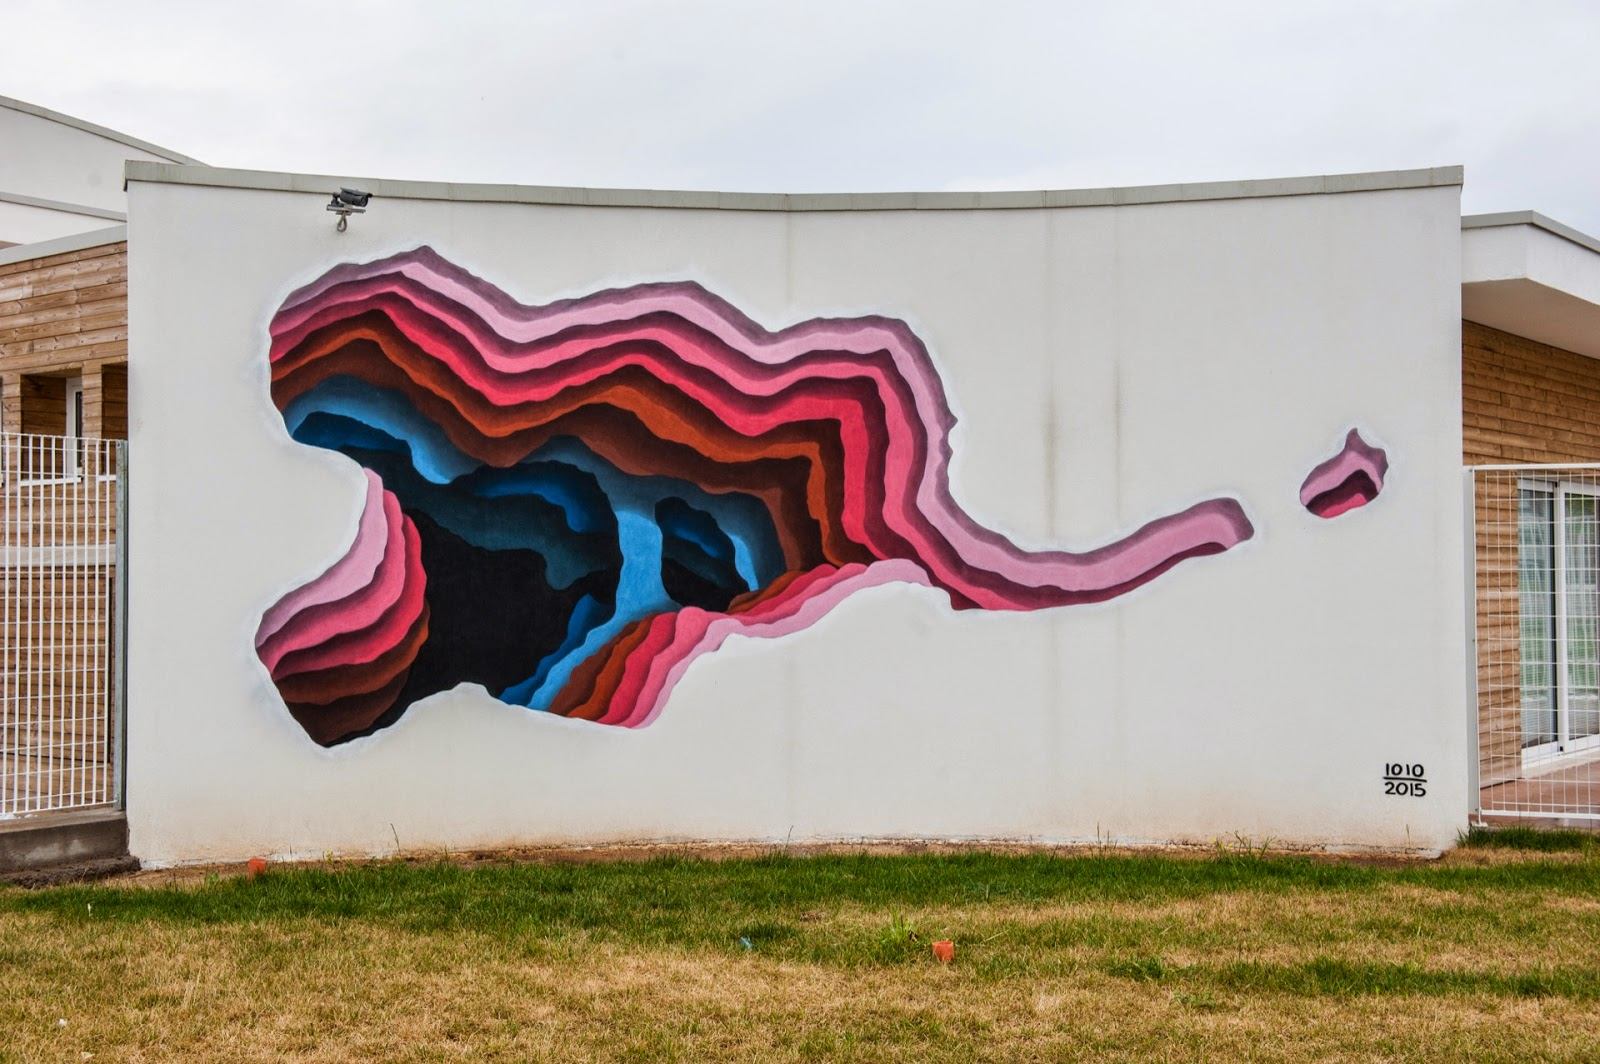 While we last heard from him a few days ago in Marseille, France, 1010 is now in Italy where he was invited to paint for the Memorie Urbane Street Art Festival.